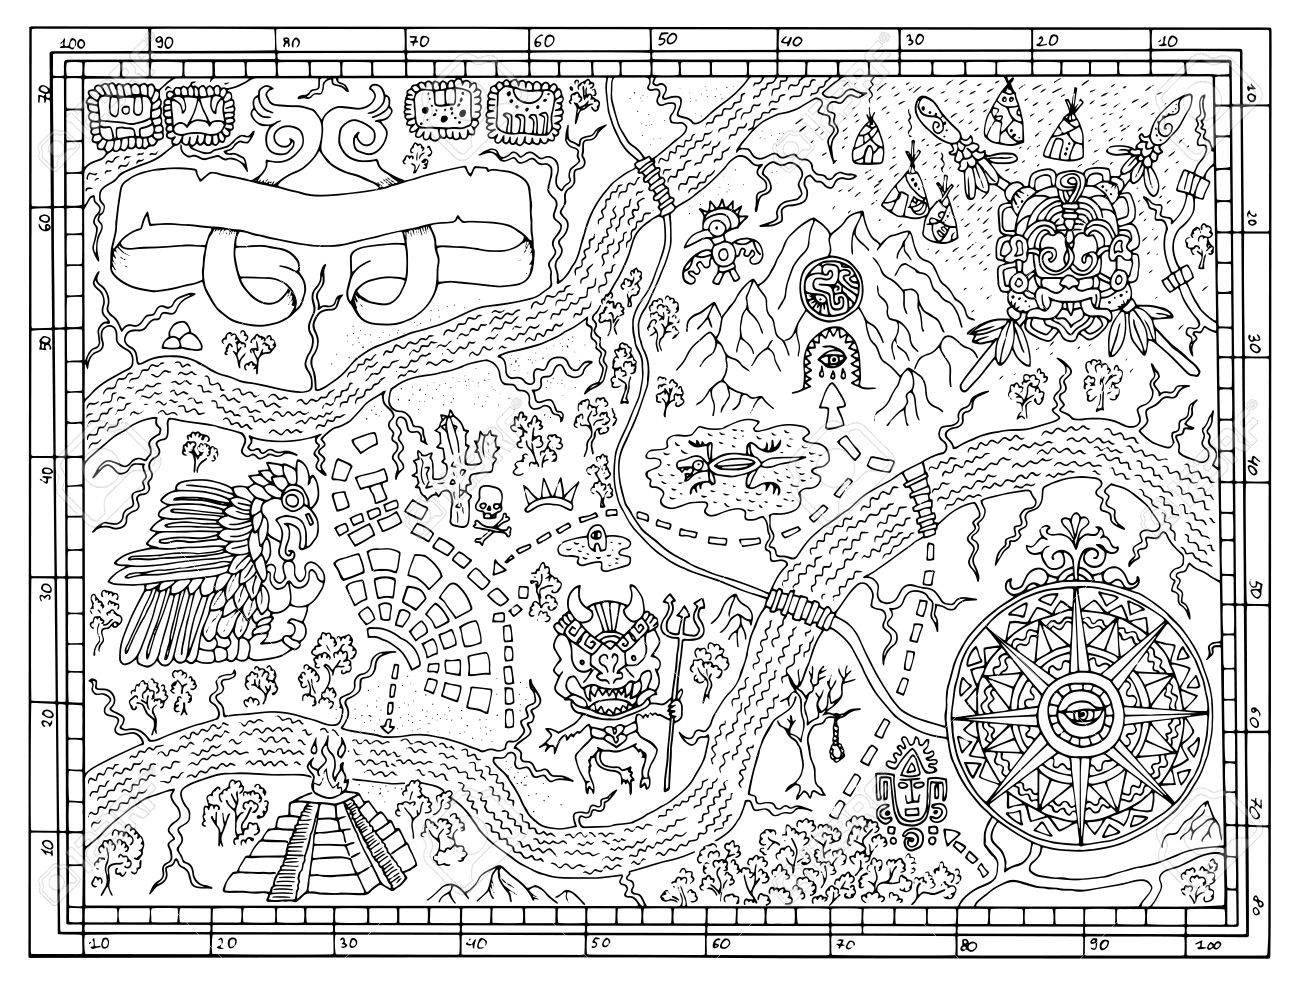 1300x985 ancient maya or pirate map for adult or kids coloring book hand